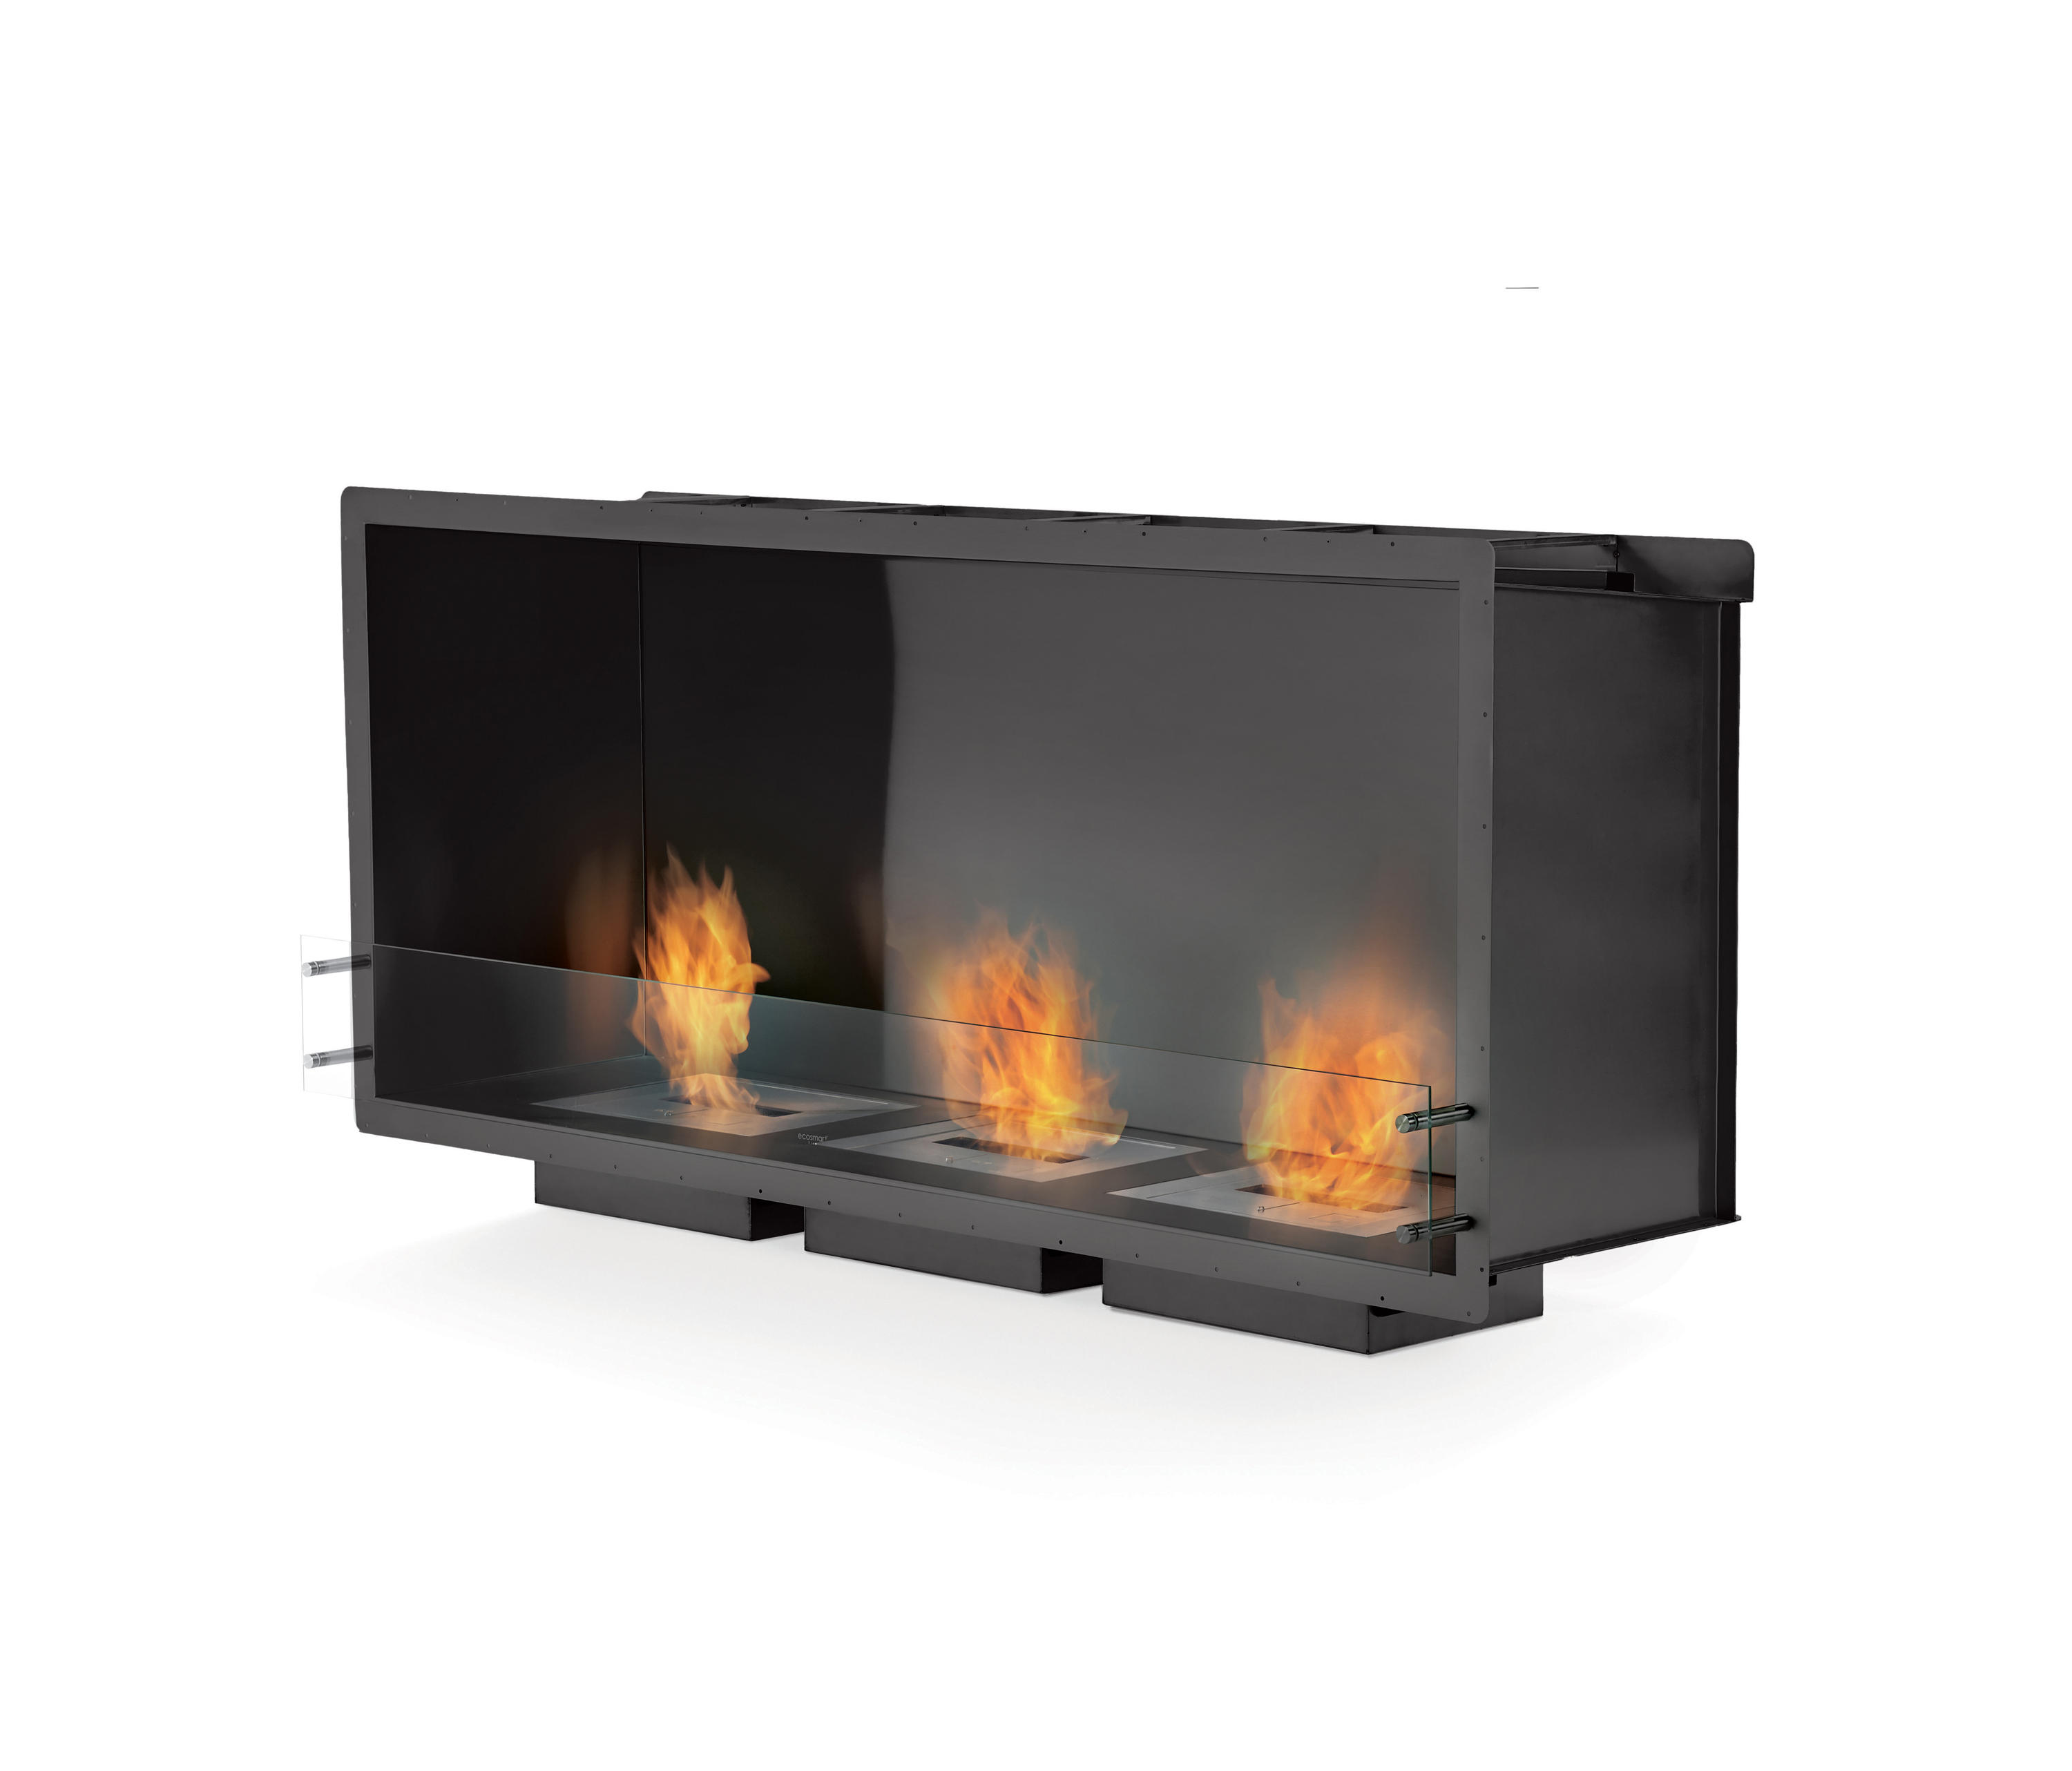 eco smart fireplace inserts fireplaces. Black Bedroom Furniture Sets. Home Design Ideas